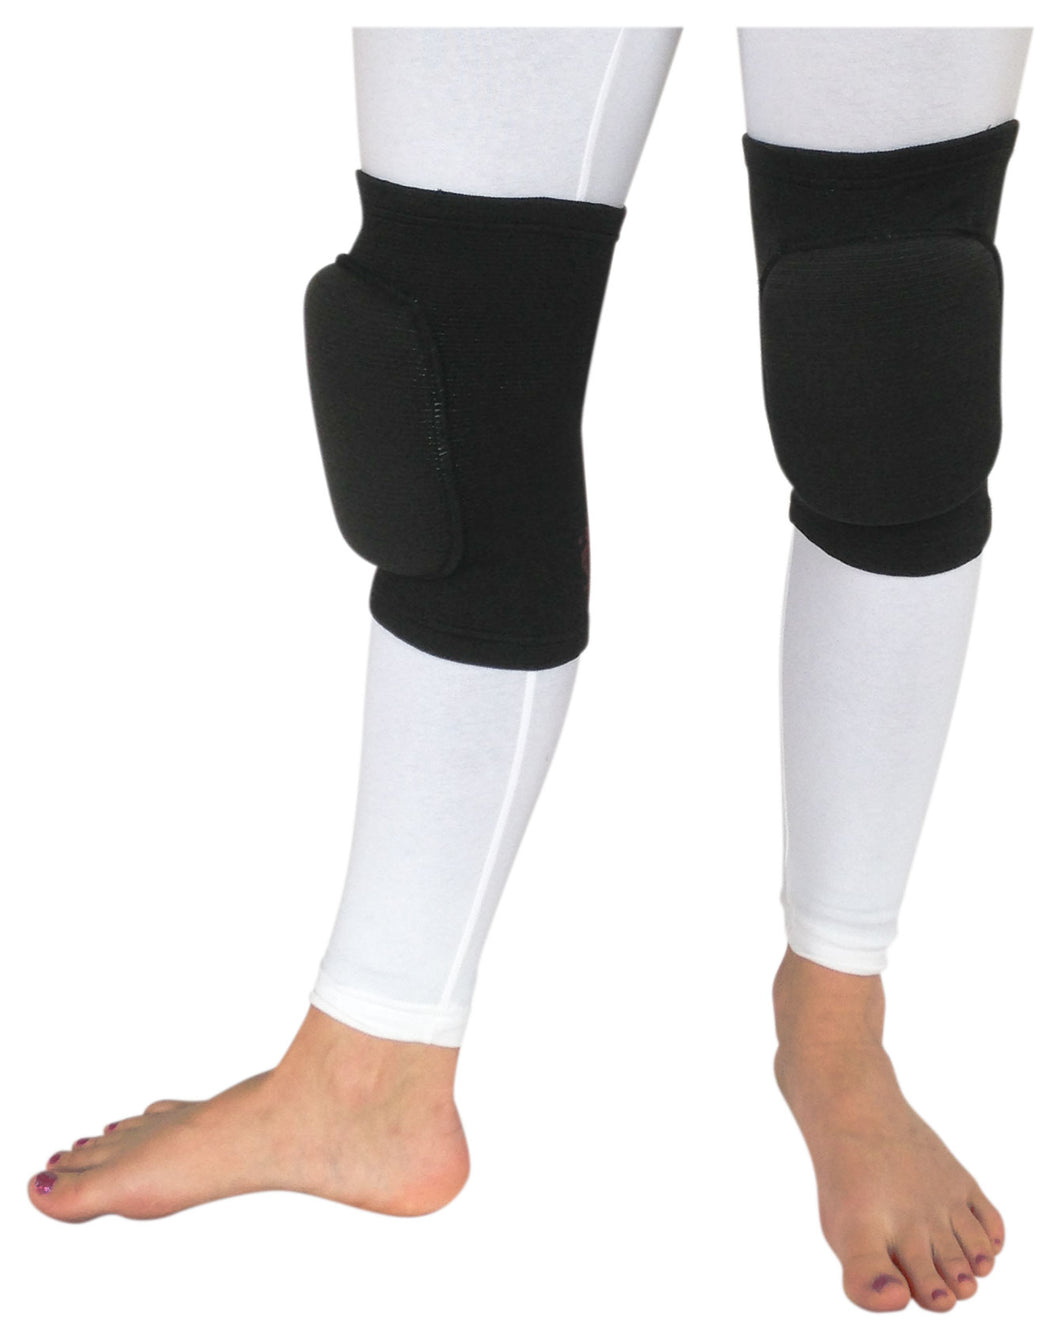 Knee Pads (4 Pack)